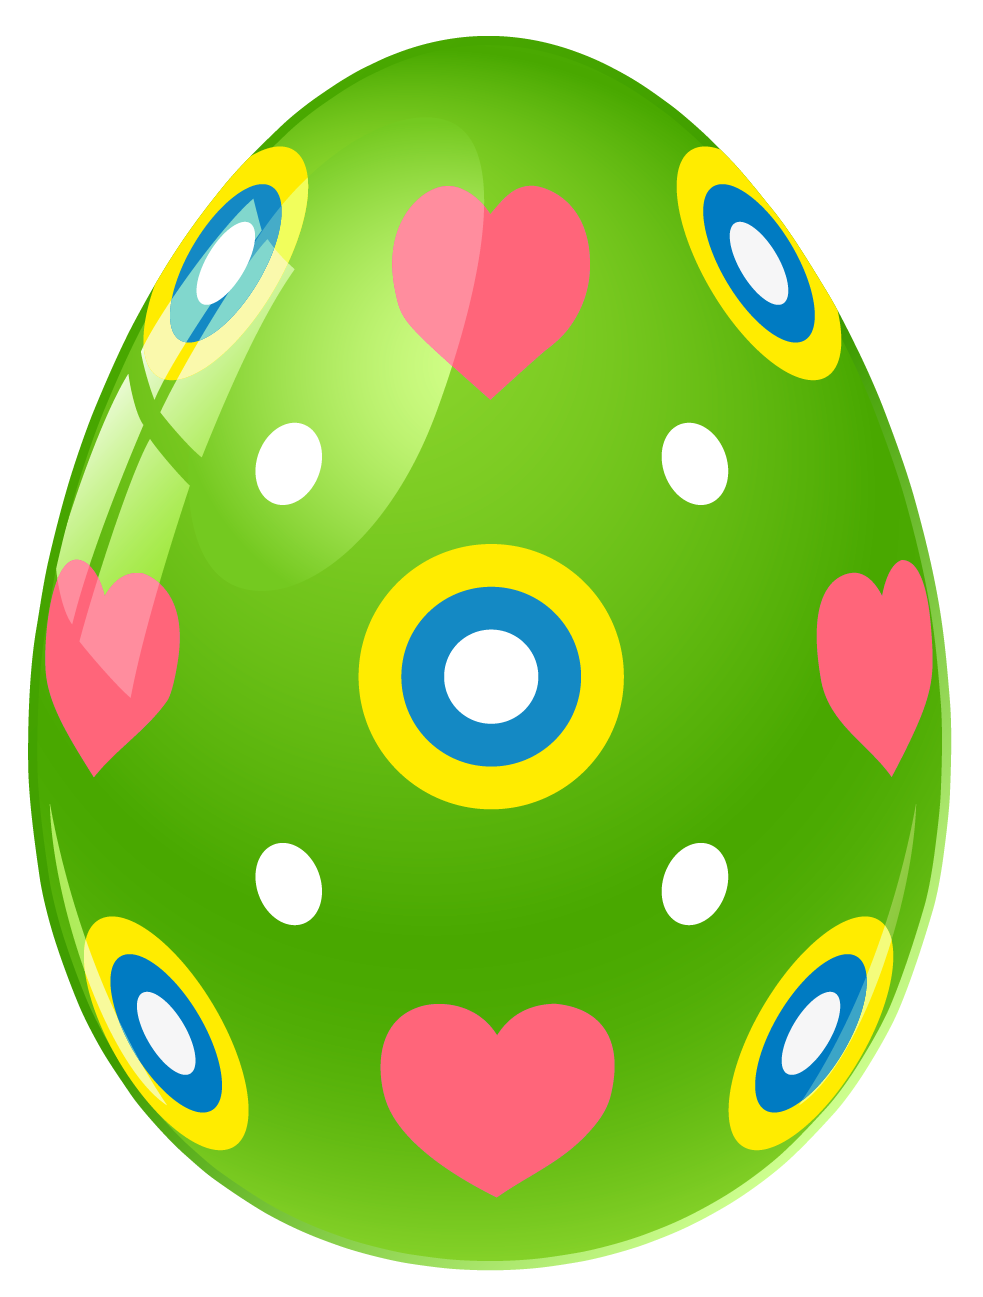 983x1297 Easter Eggs Png Transparent Easter Eggs.png Images. Pluspng